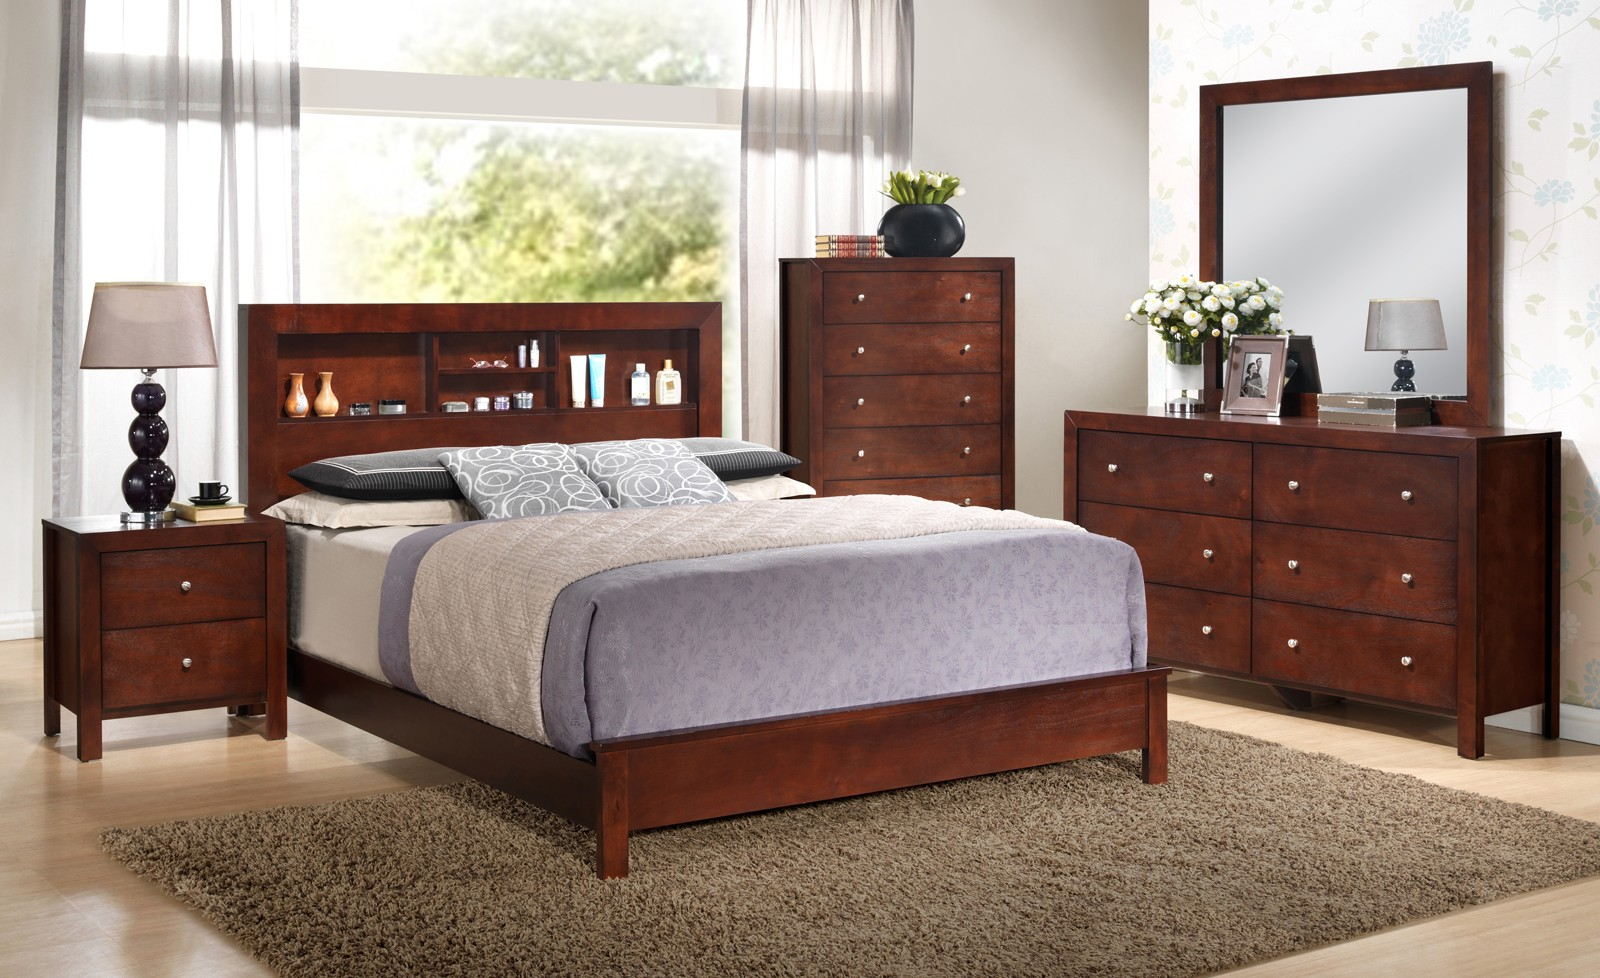 glory furniture g2400 bookcase headboard bedroom set in cherry by glory